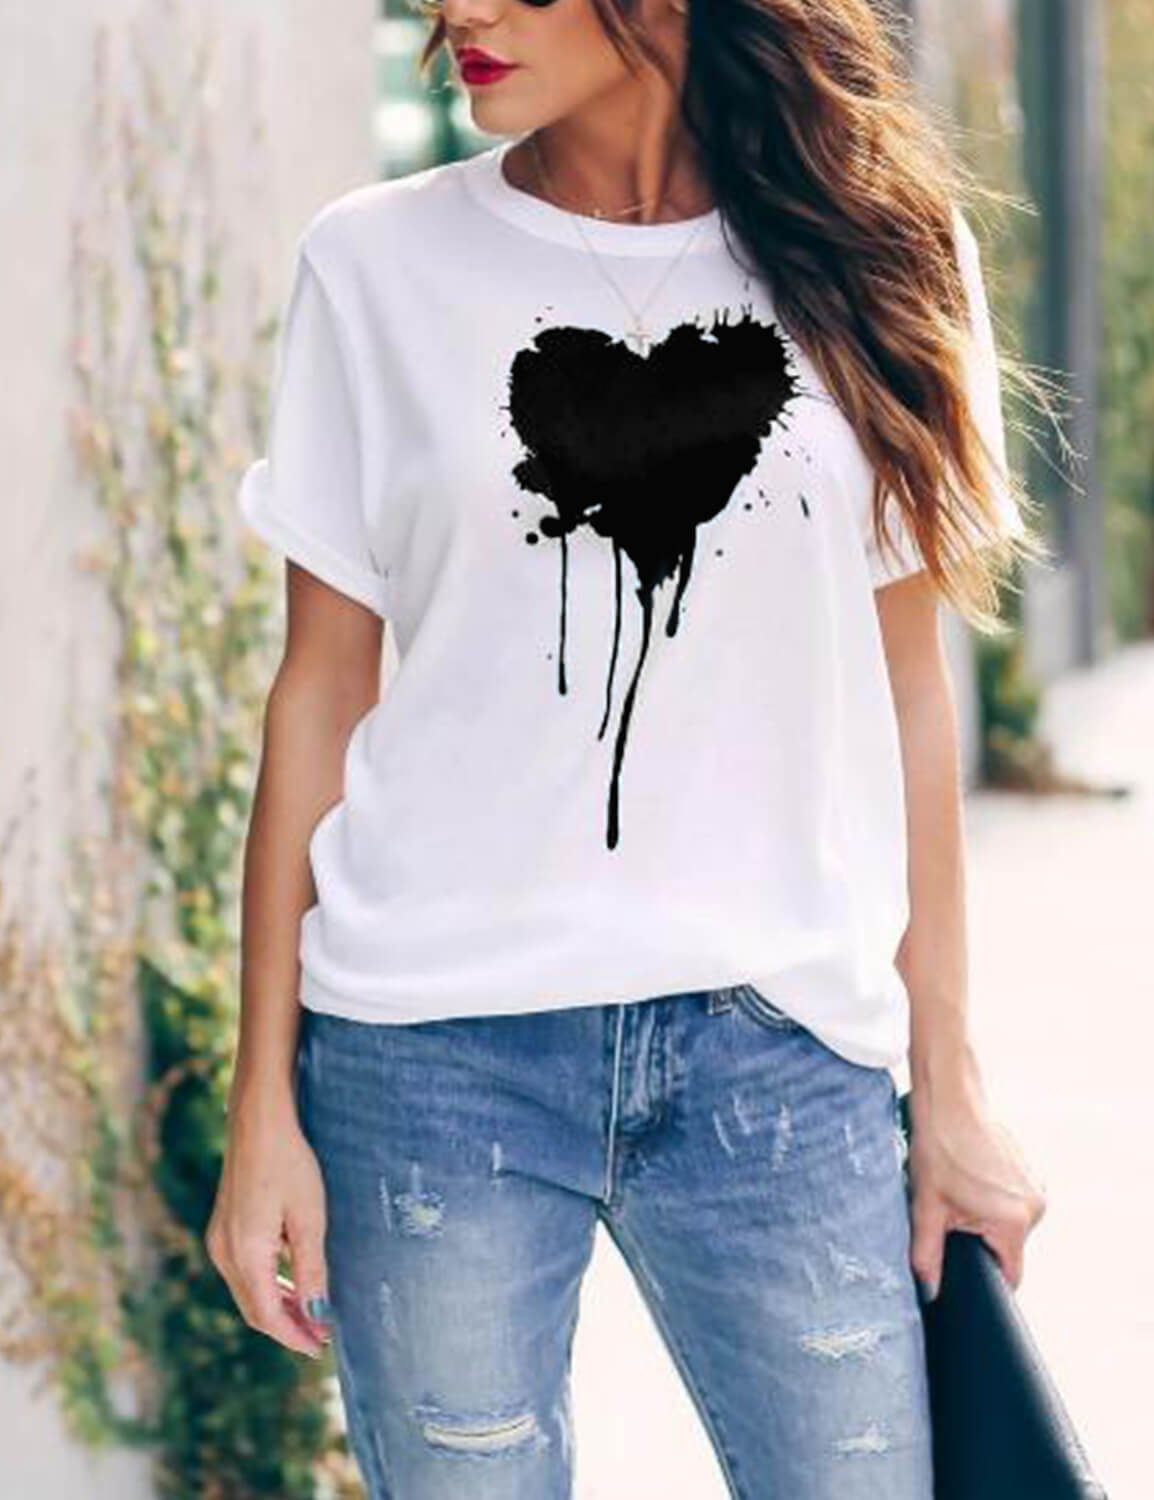 Melting Black Heart T-Shirt - Blooming Jelly